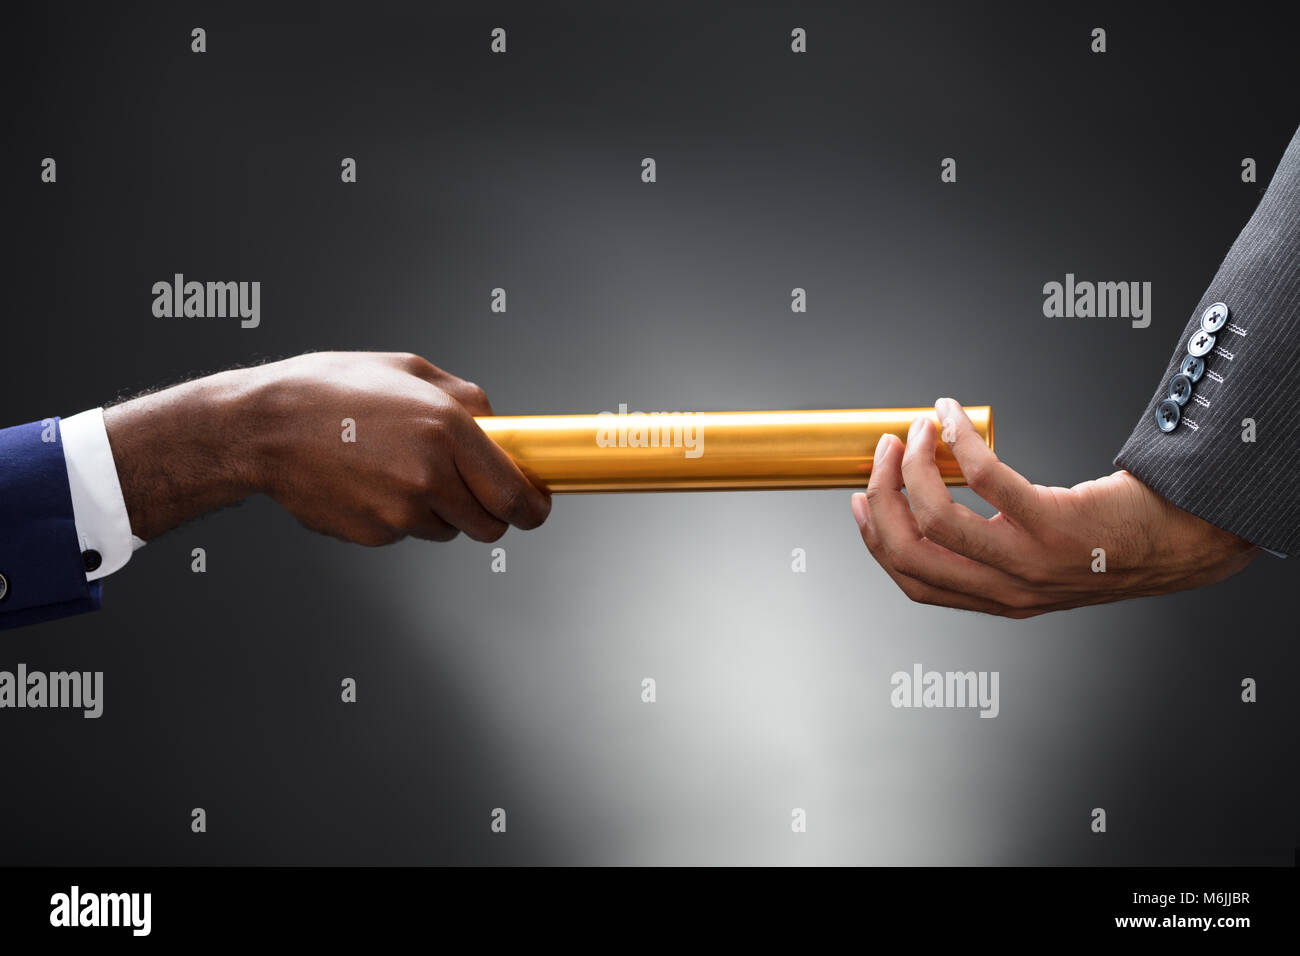 Man Passing The Golden Baton To His Partner On Gray Background - Stock Image